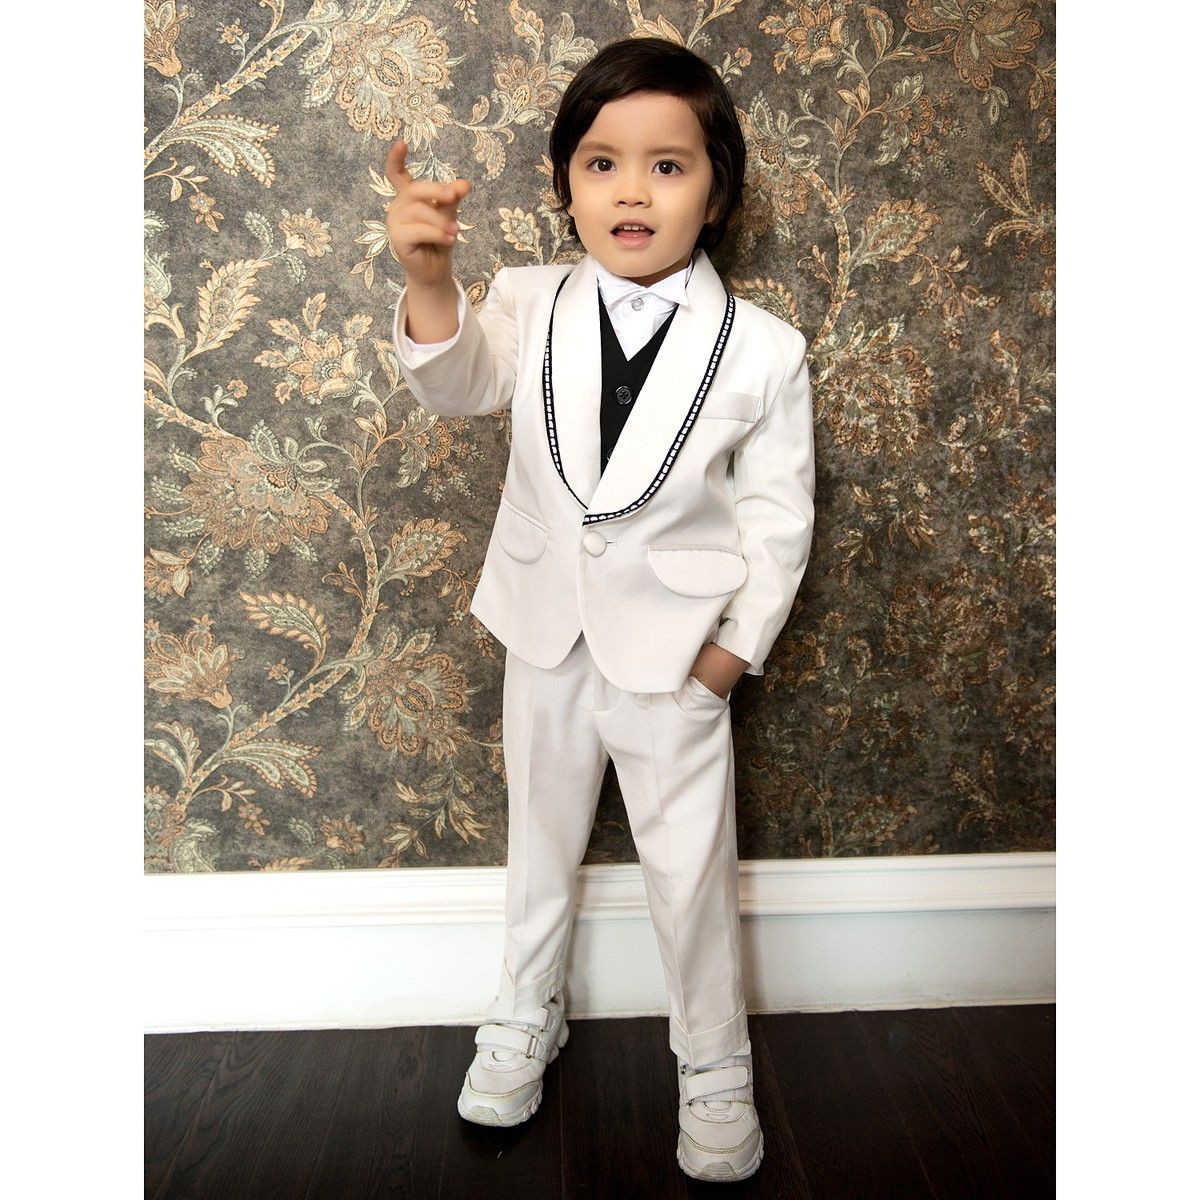 Mini with swag. Ring Bear Outfits Whits First Communion Boys Suits ...